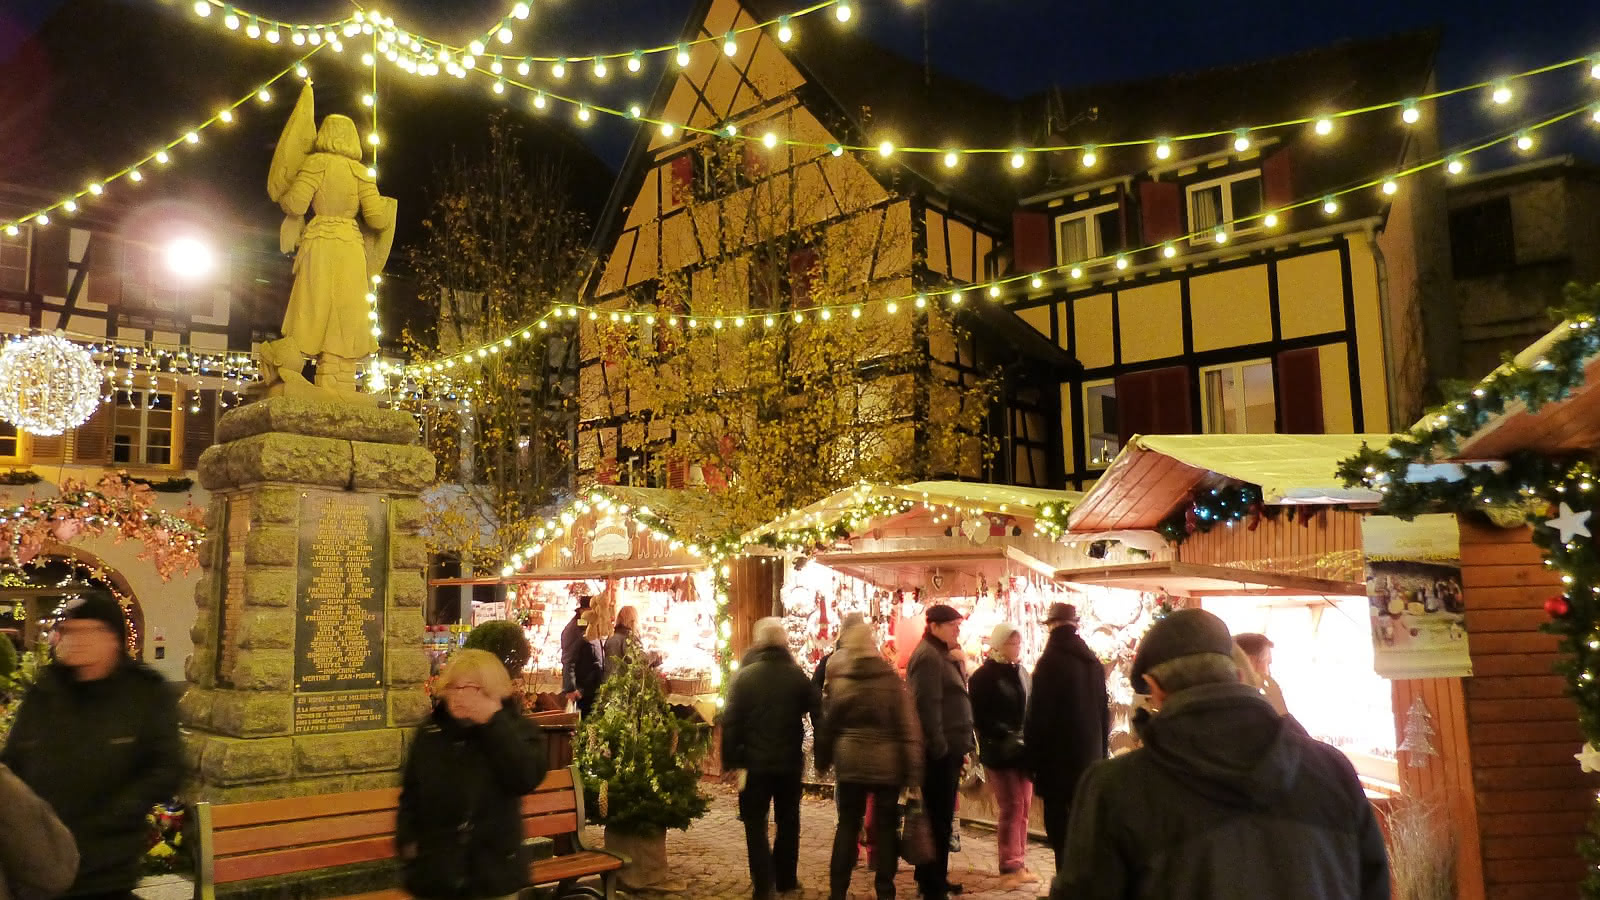 Authentic Christmas Market - Eguisheim